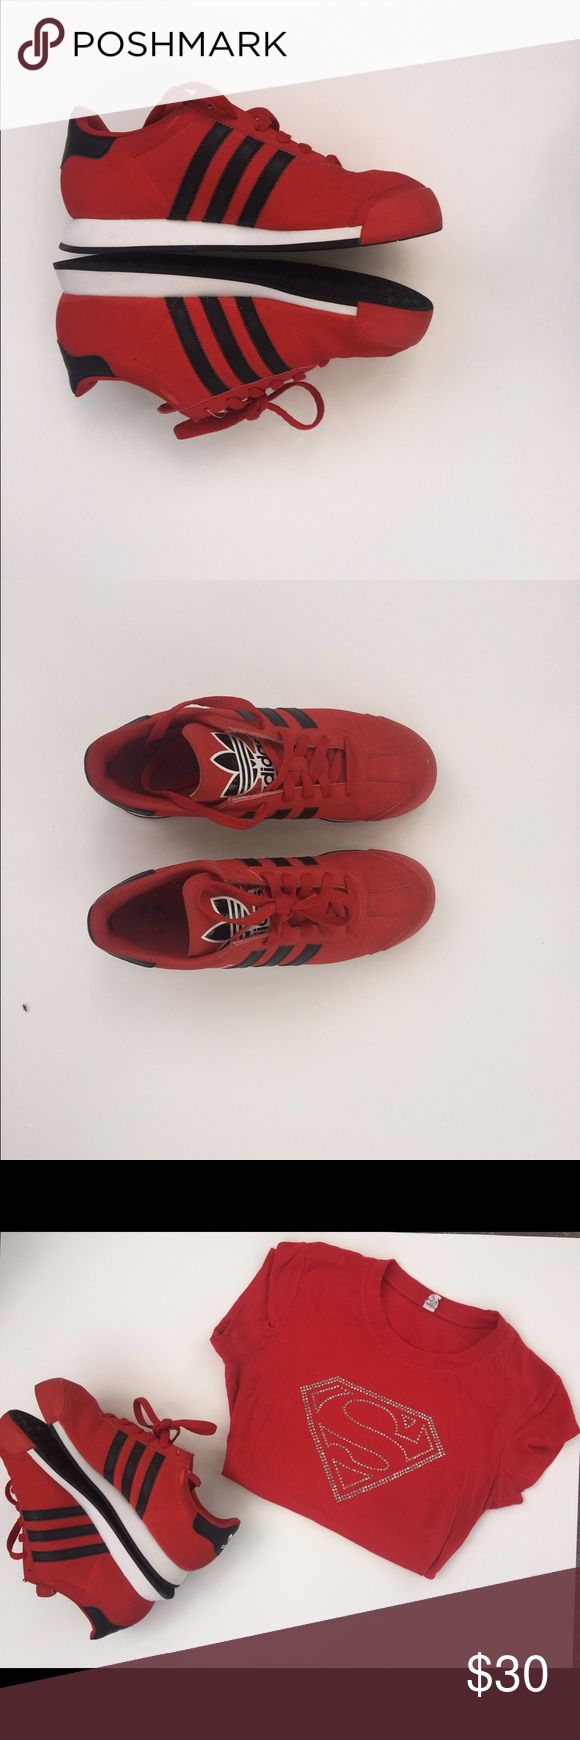 Adidas Somas. ADDIAS! In very good condition, one small scuff on the side. They run on men's size so they can fit a women's 8 and a men's 6 1/2. adidas Shoes Sneakers